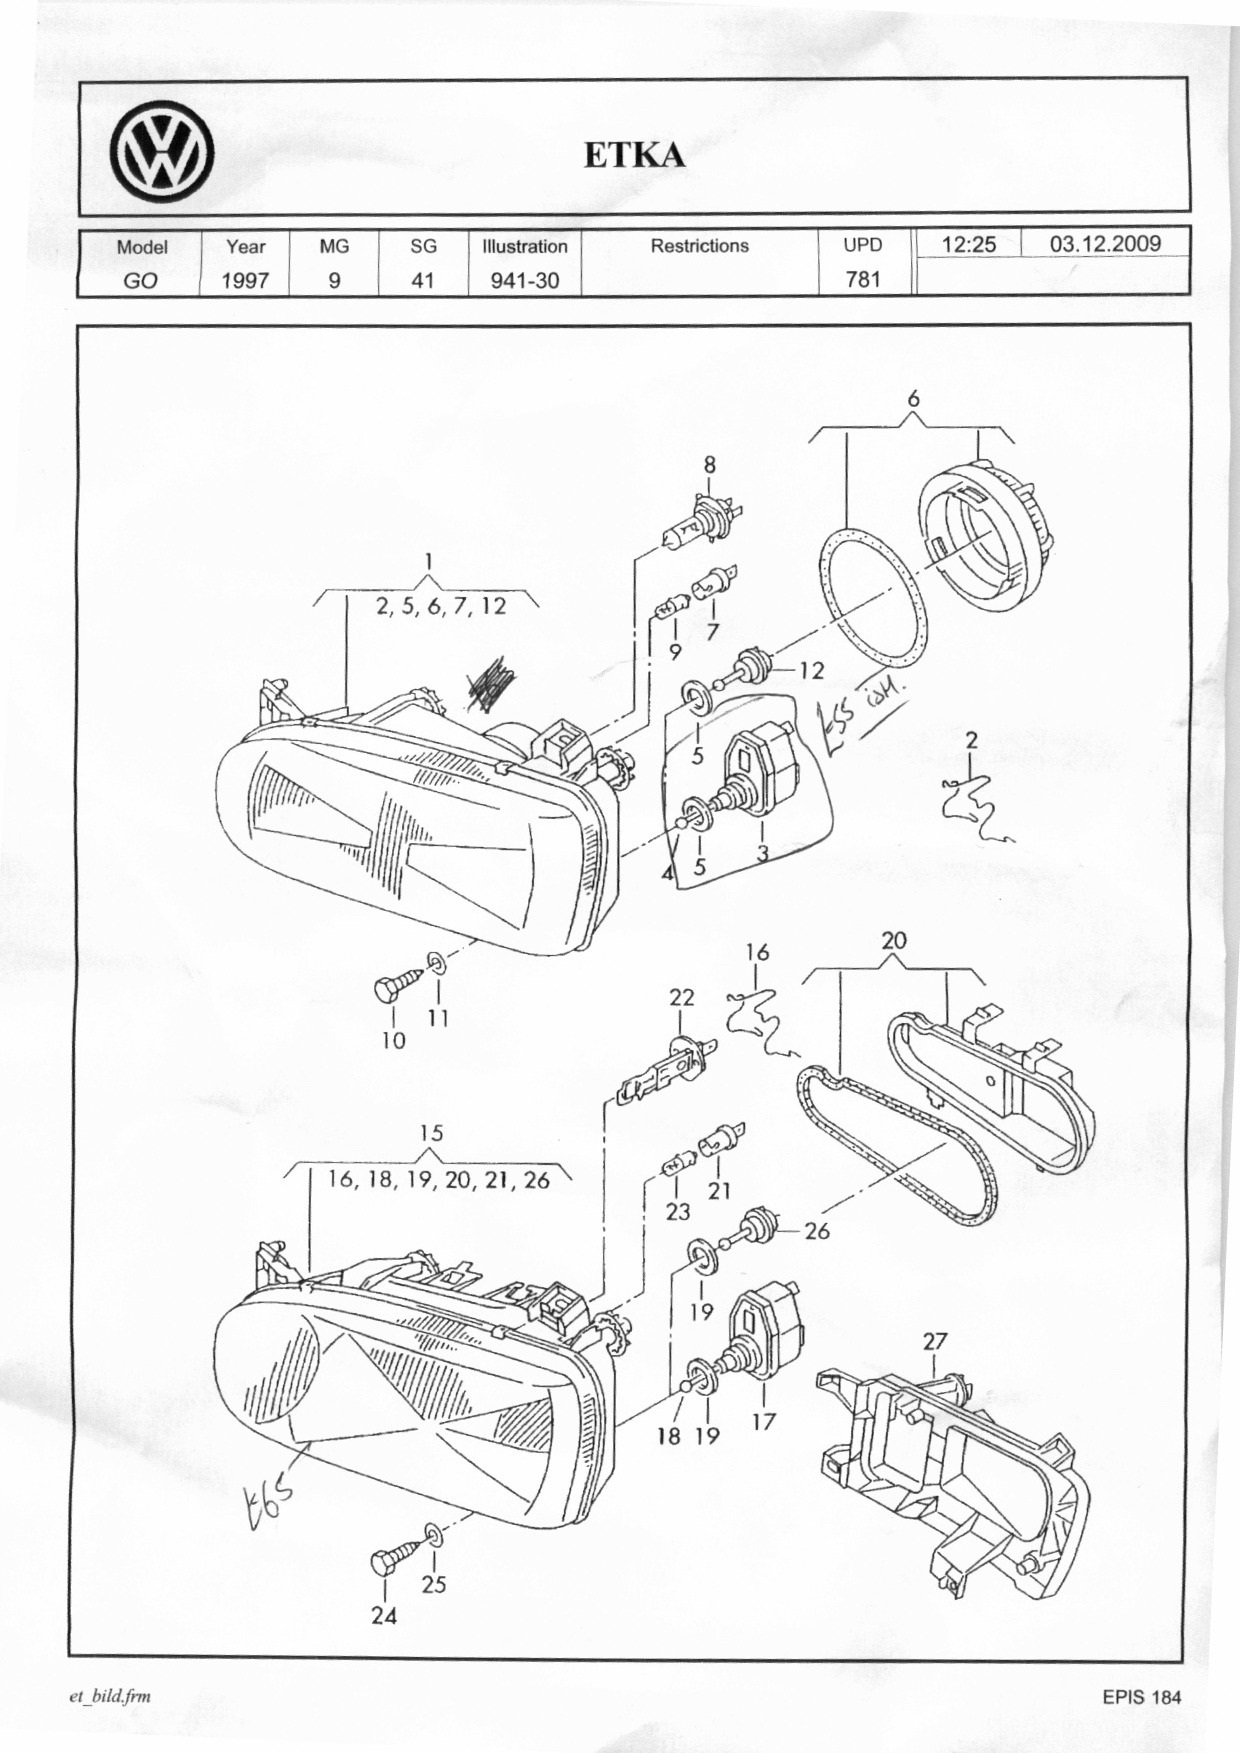 03 jetta 2 0 engine diagram ez wire harness 98 vr6 free image for